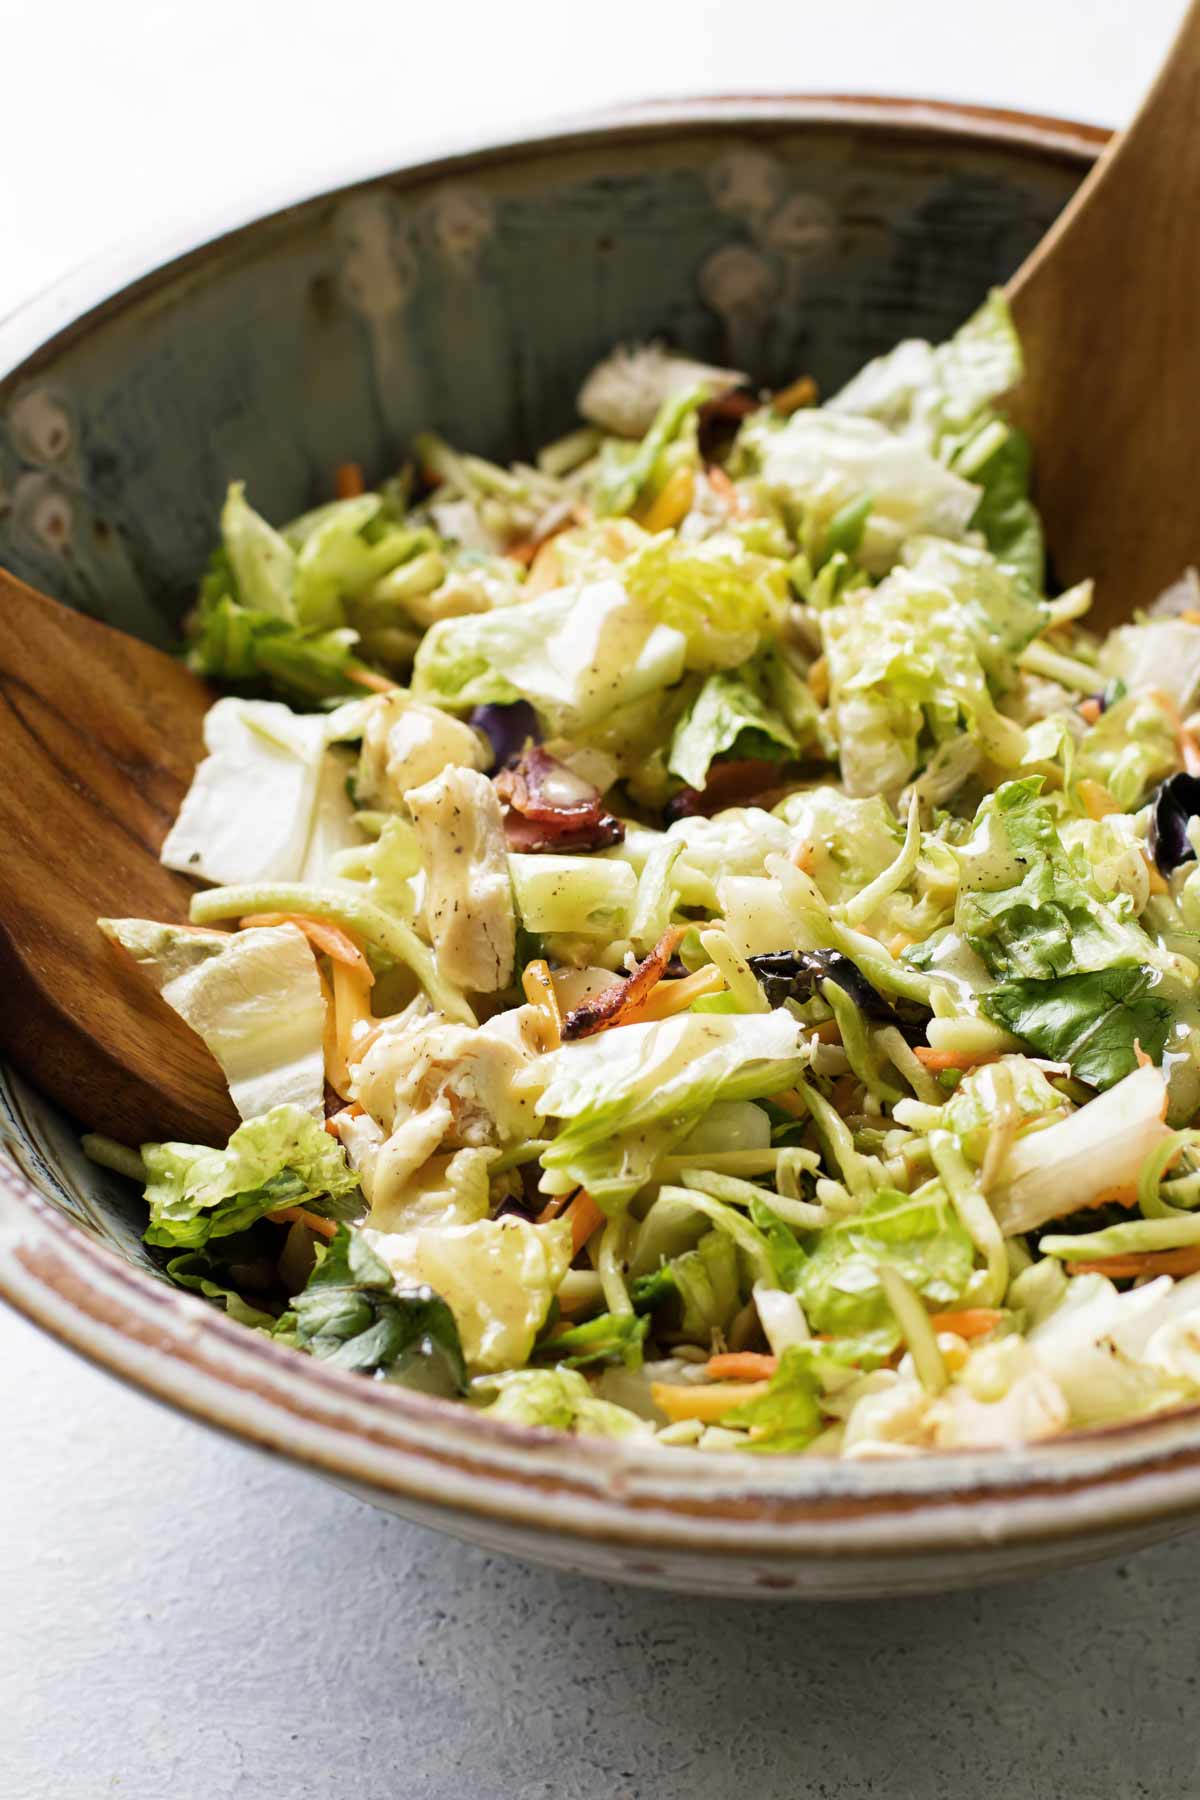 close-up photo of a the salad in a serving bowl